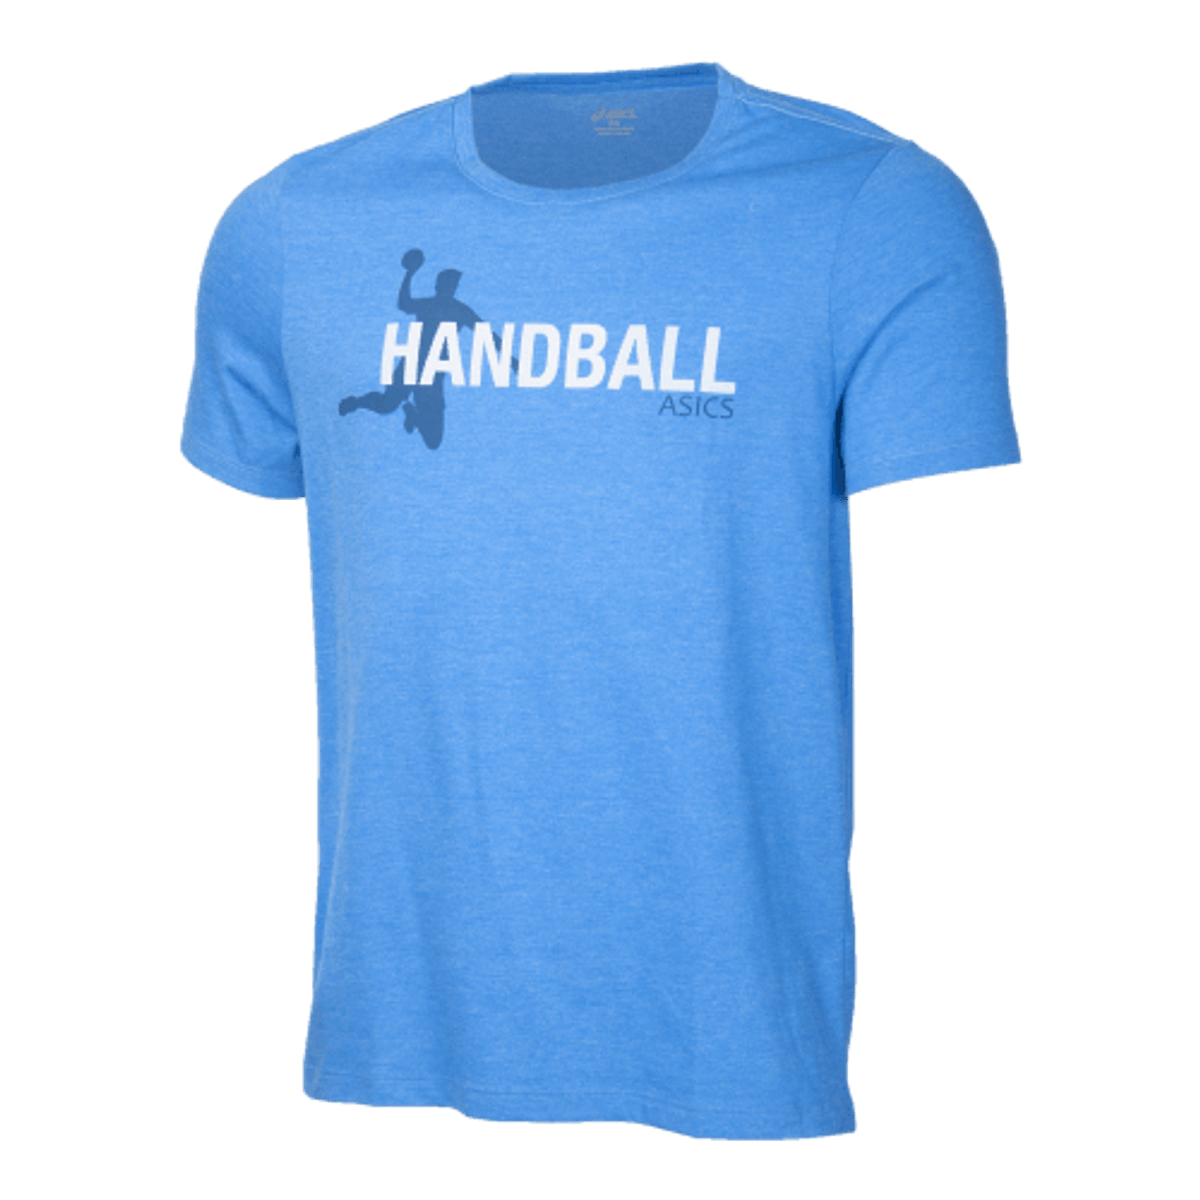 M-INDOOR-HANDBALL-TEE-